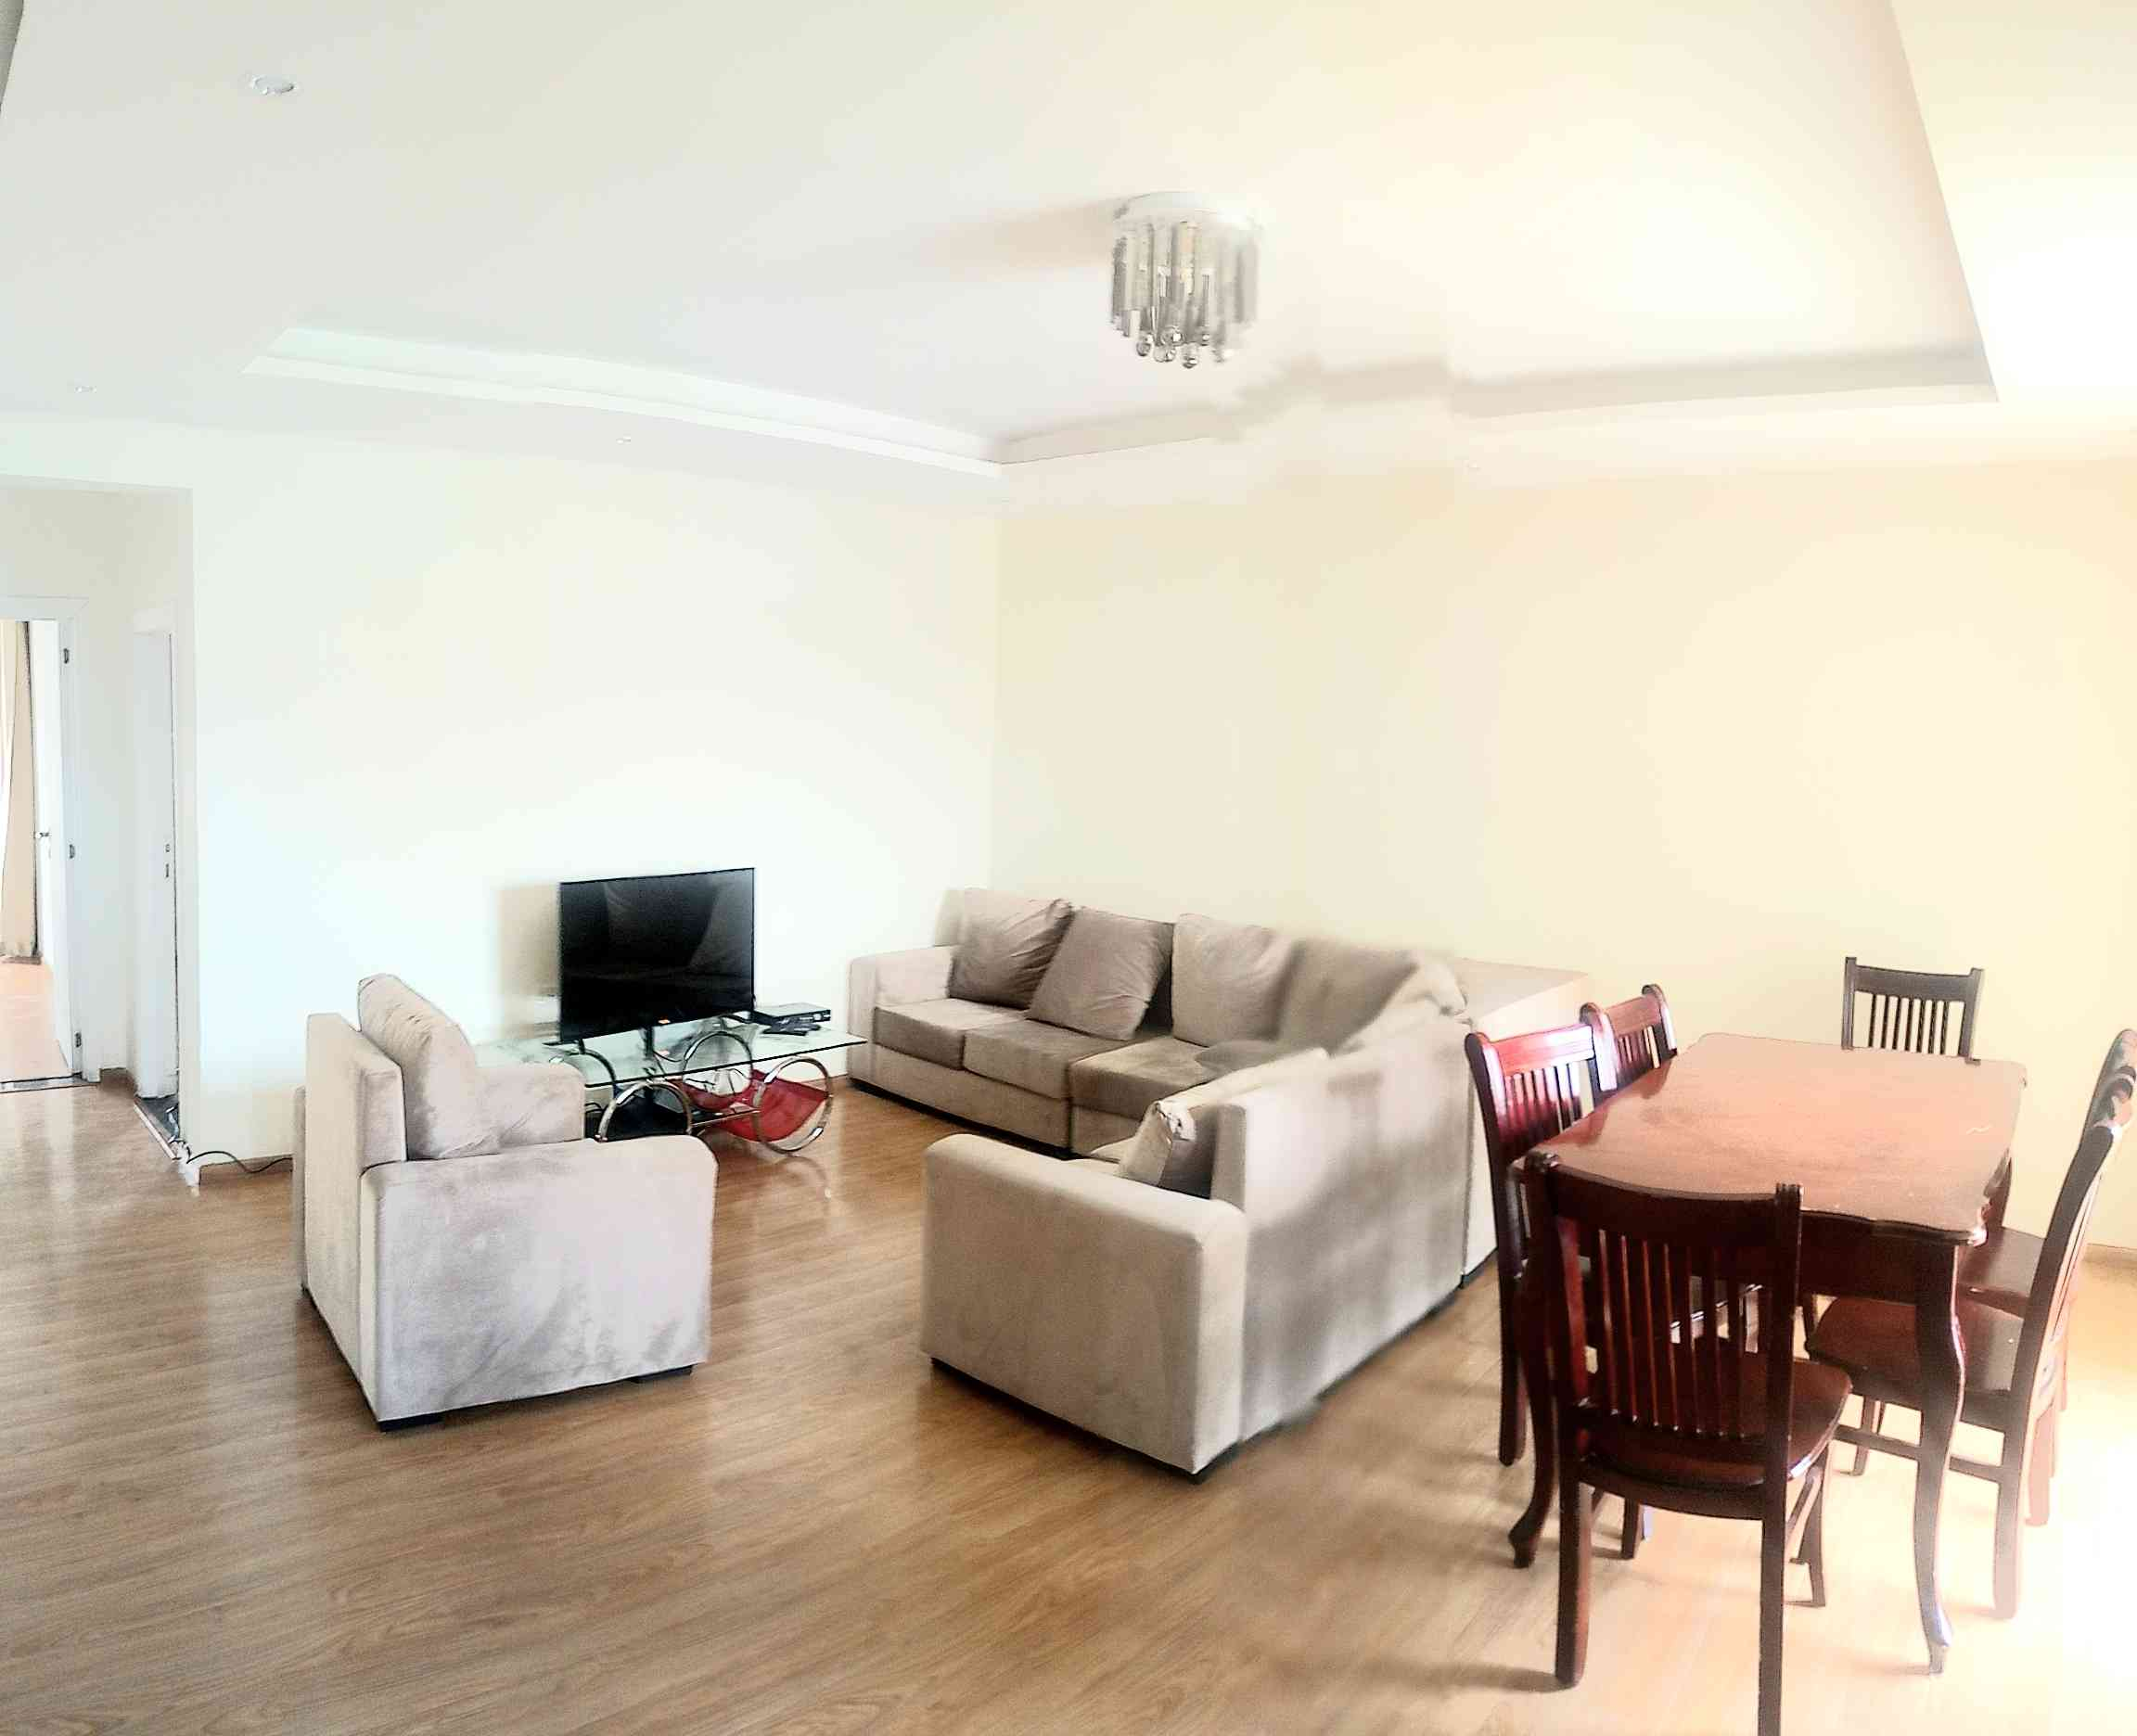 2 Bedroom Furnished Flat For Rent In Addis Ababa, CMC